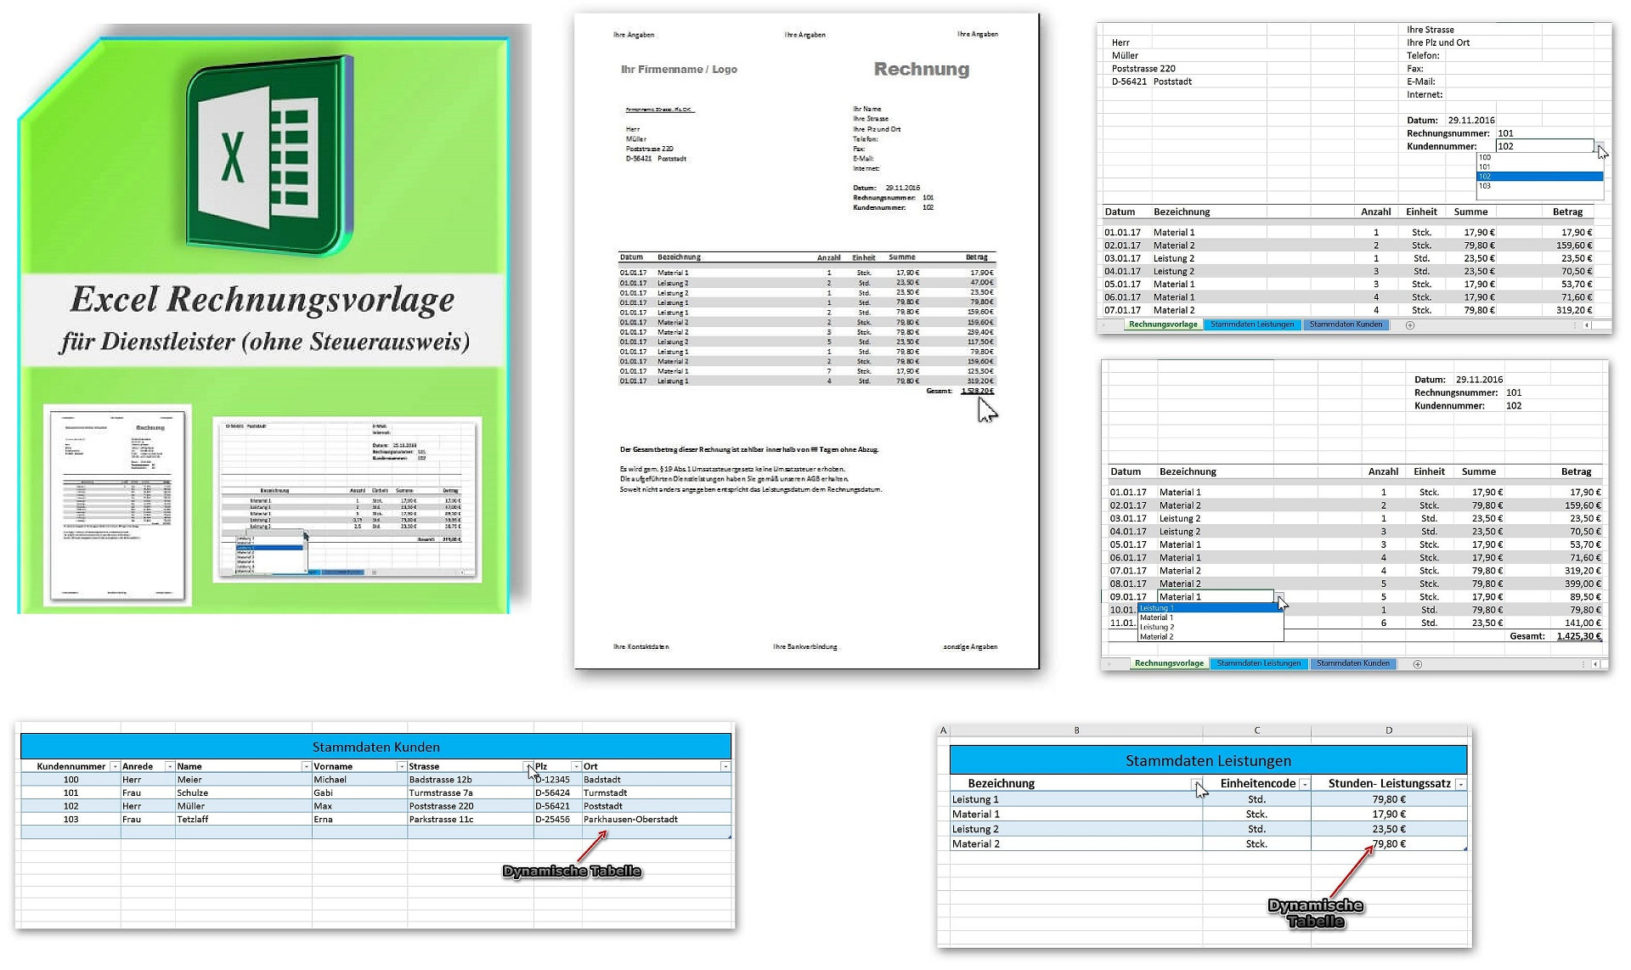 January Archive Page 34 Free Lumber Takeoff Spreadsheet Compare 2 Spreadsheets Recruiting